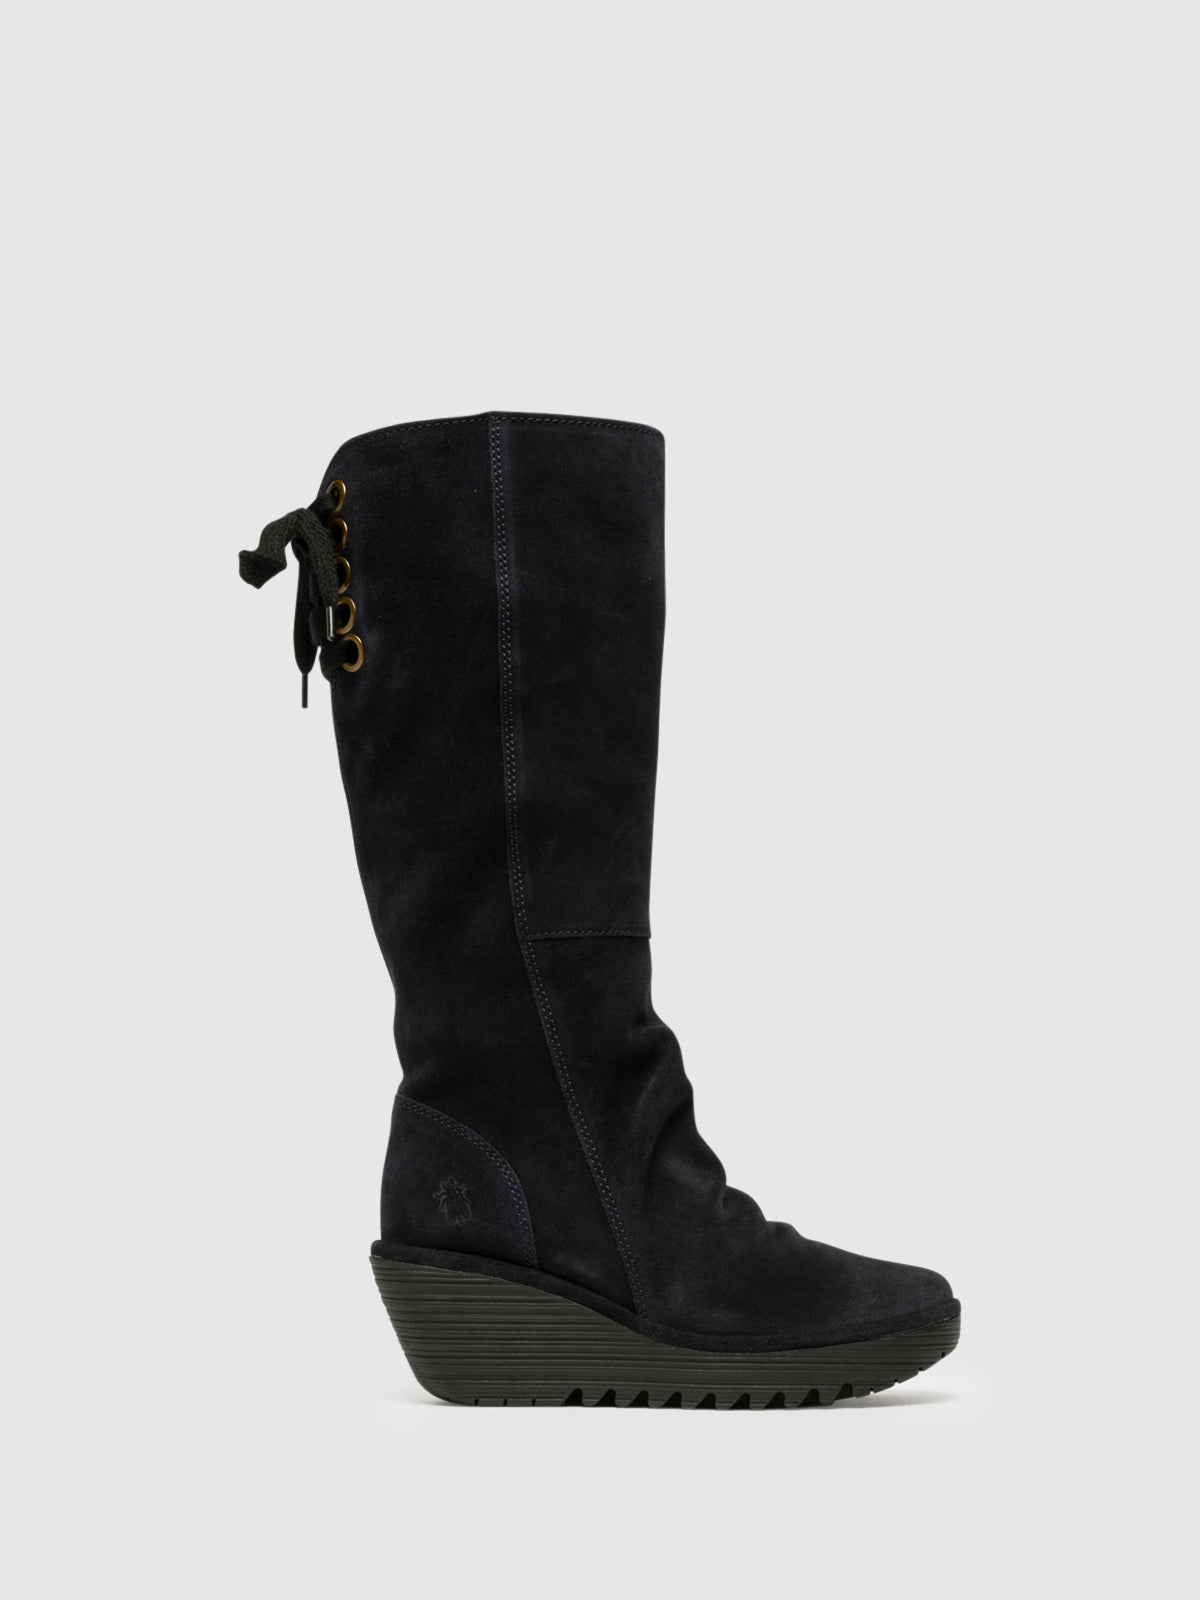 Fly London Navy Knee-High Boots